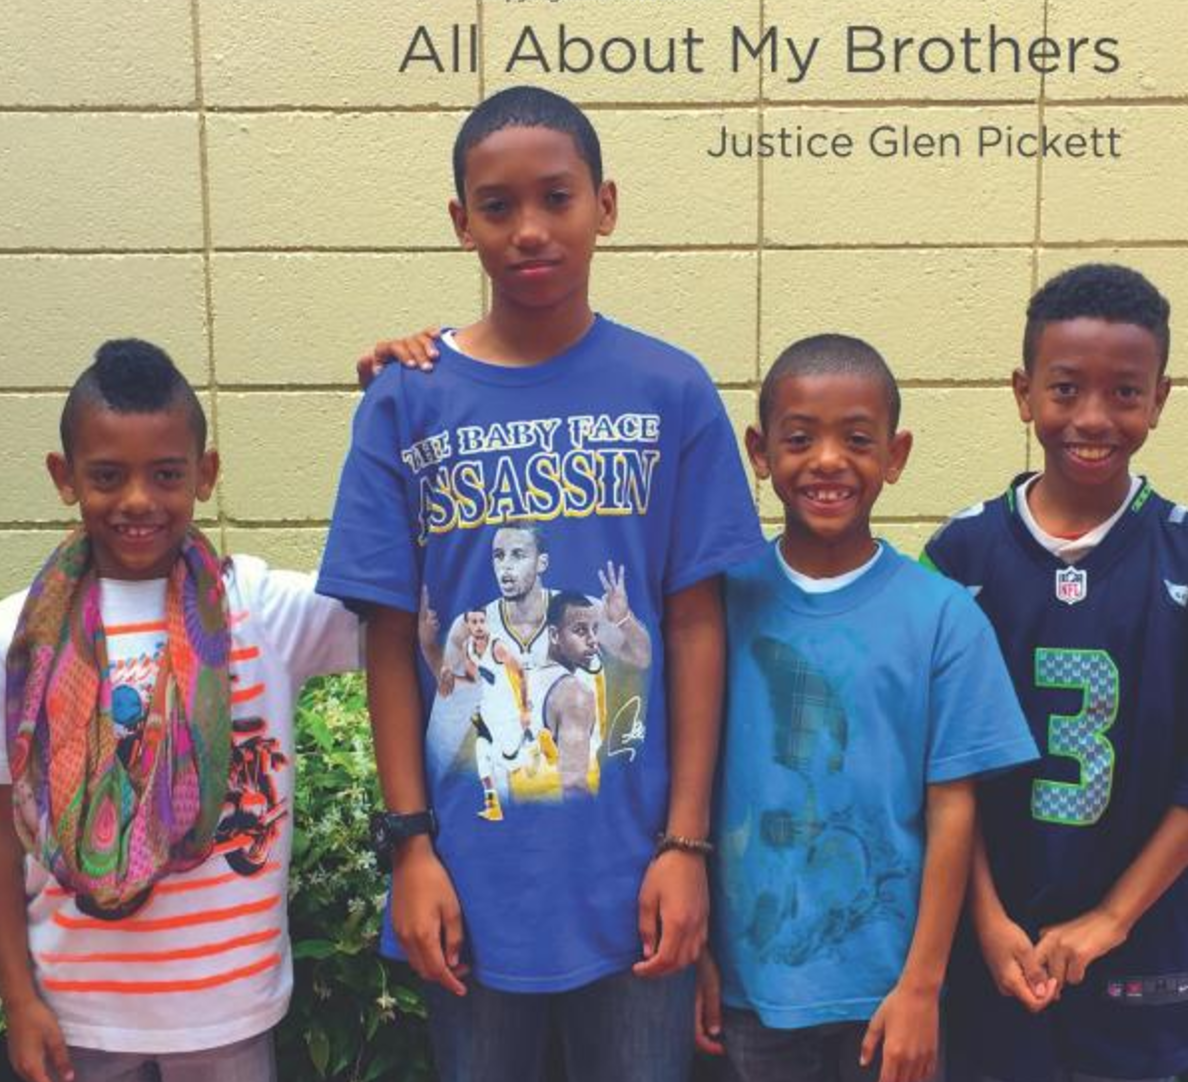 All About My Brothers   Justice Glen Pickett introduces the beginning reader to his brothers. Read along to learn where these four boys like to travel.   Buy this book.